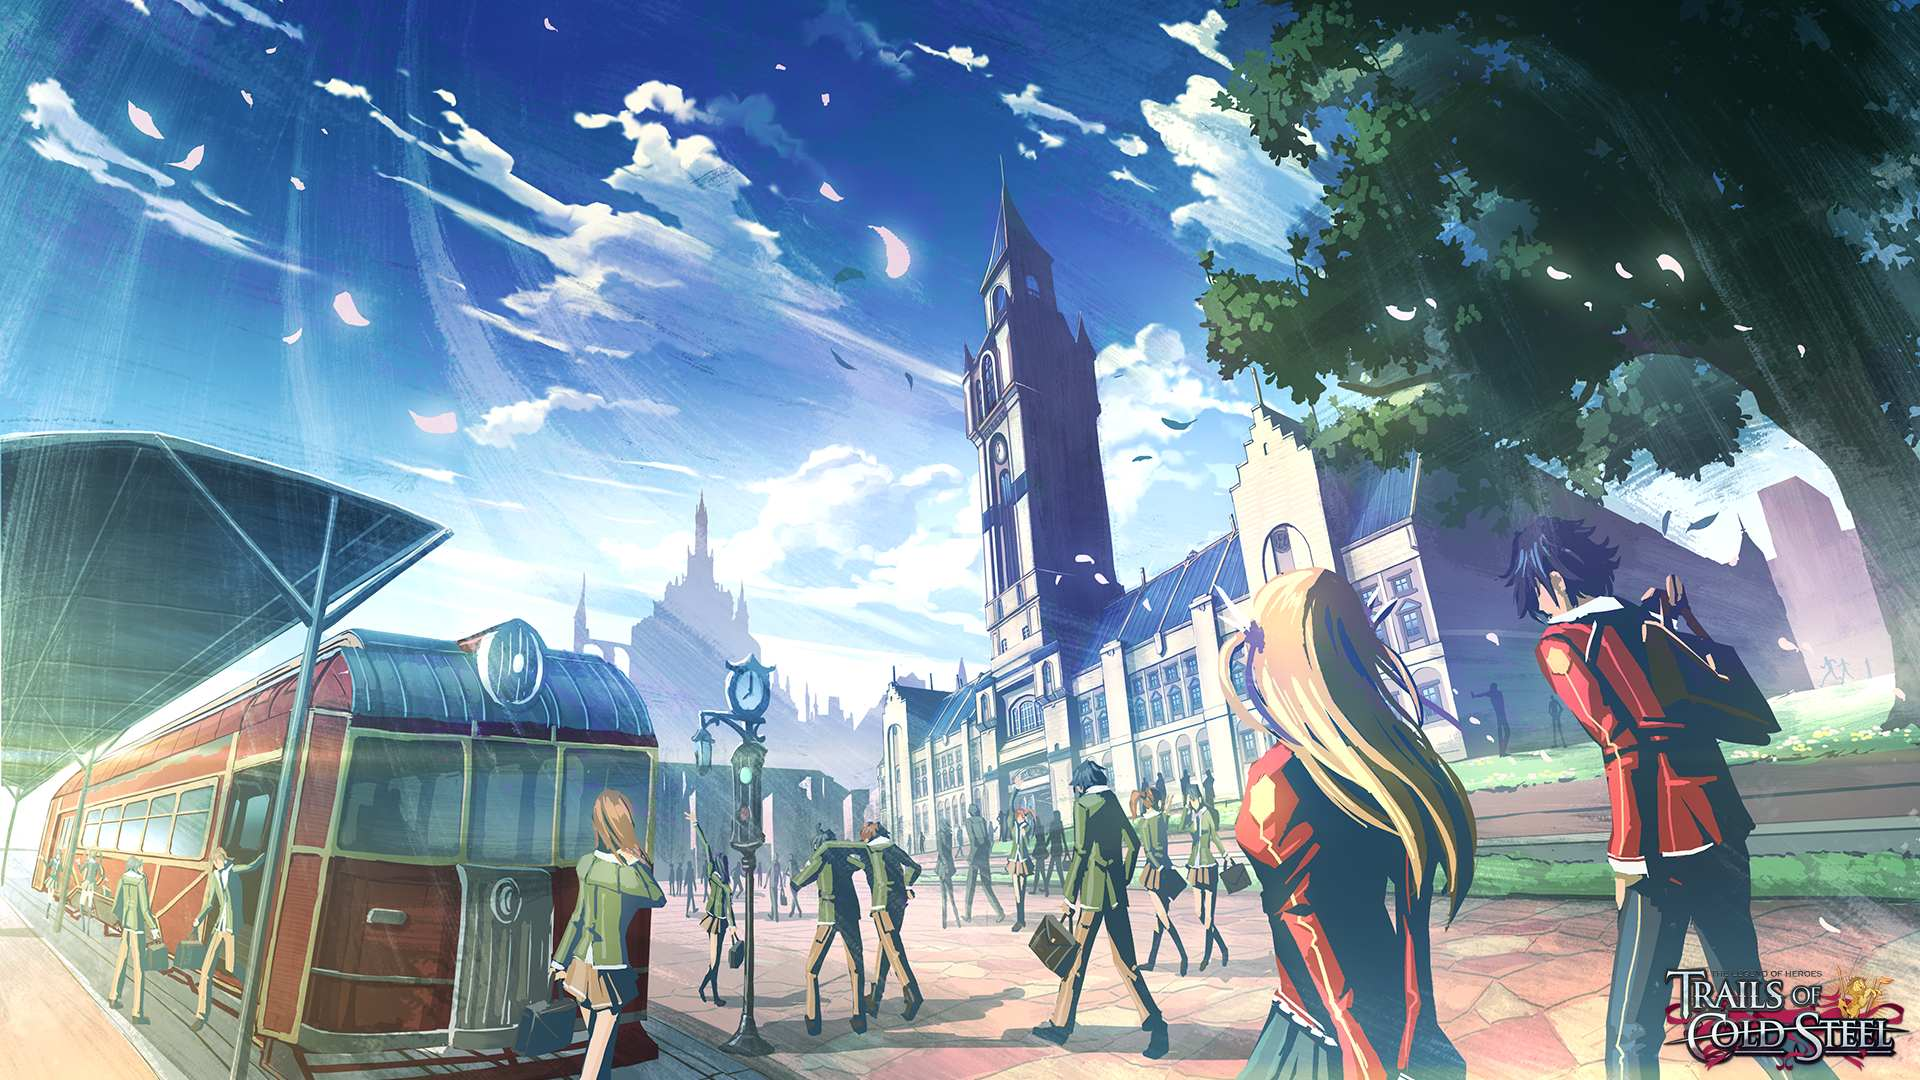 Trails Of Cold Steel Wallpaper Posted By Samantha Mercado